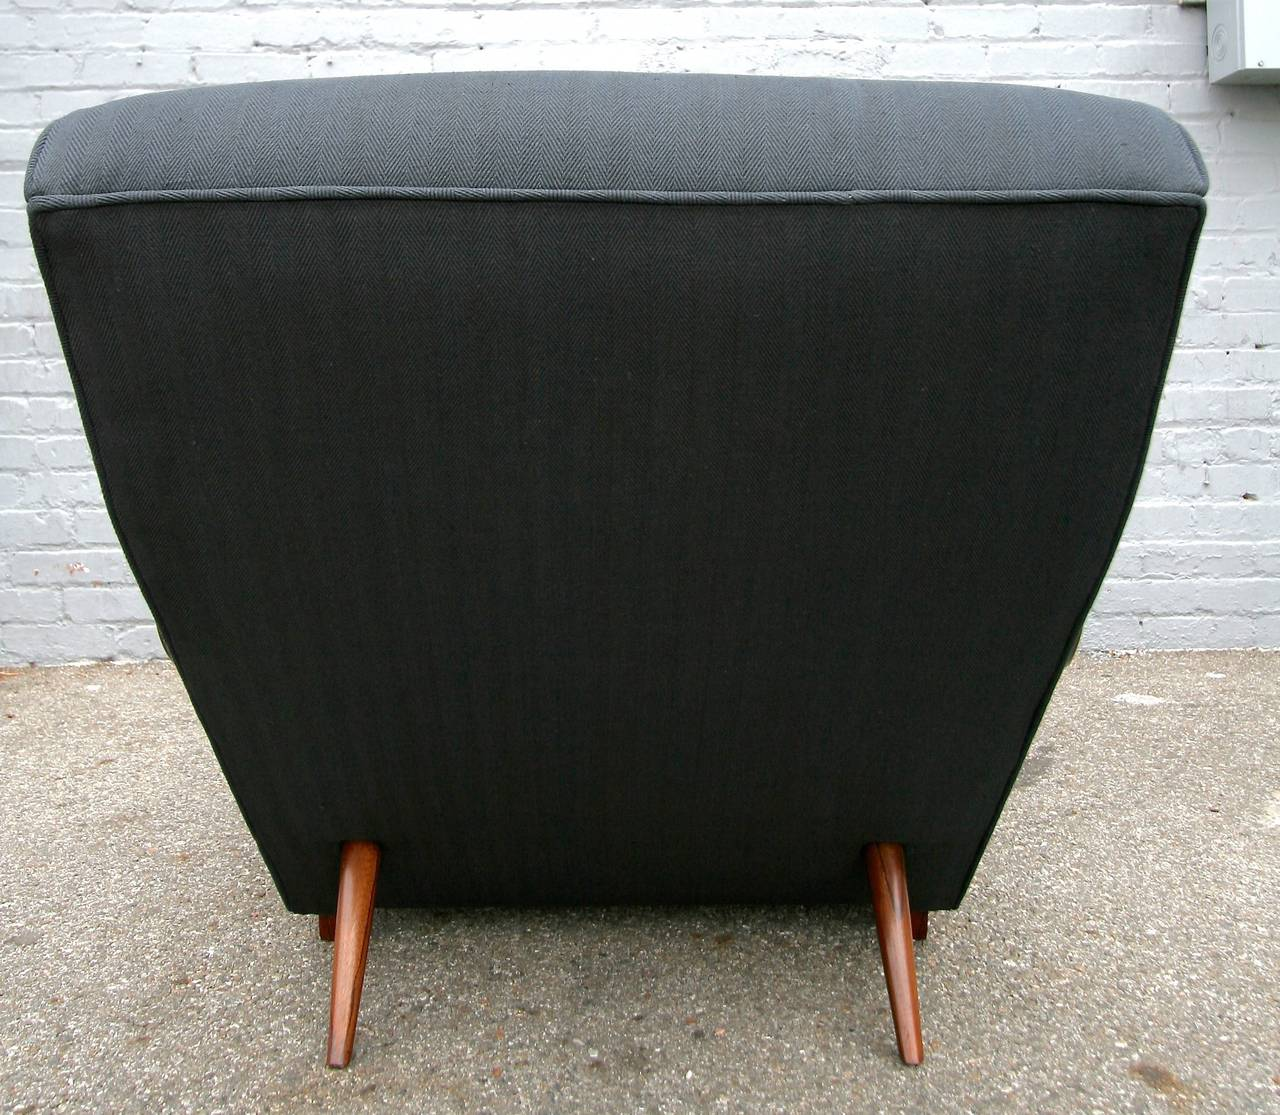 Scapinelli 1960s Brazilian Rosewood Chaise Longue For Sale 1